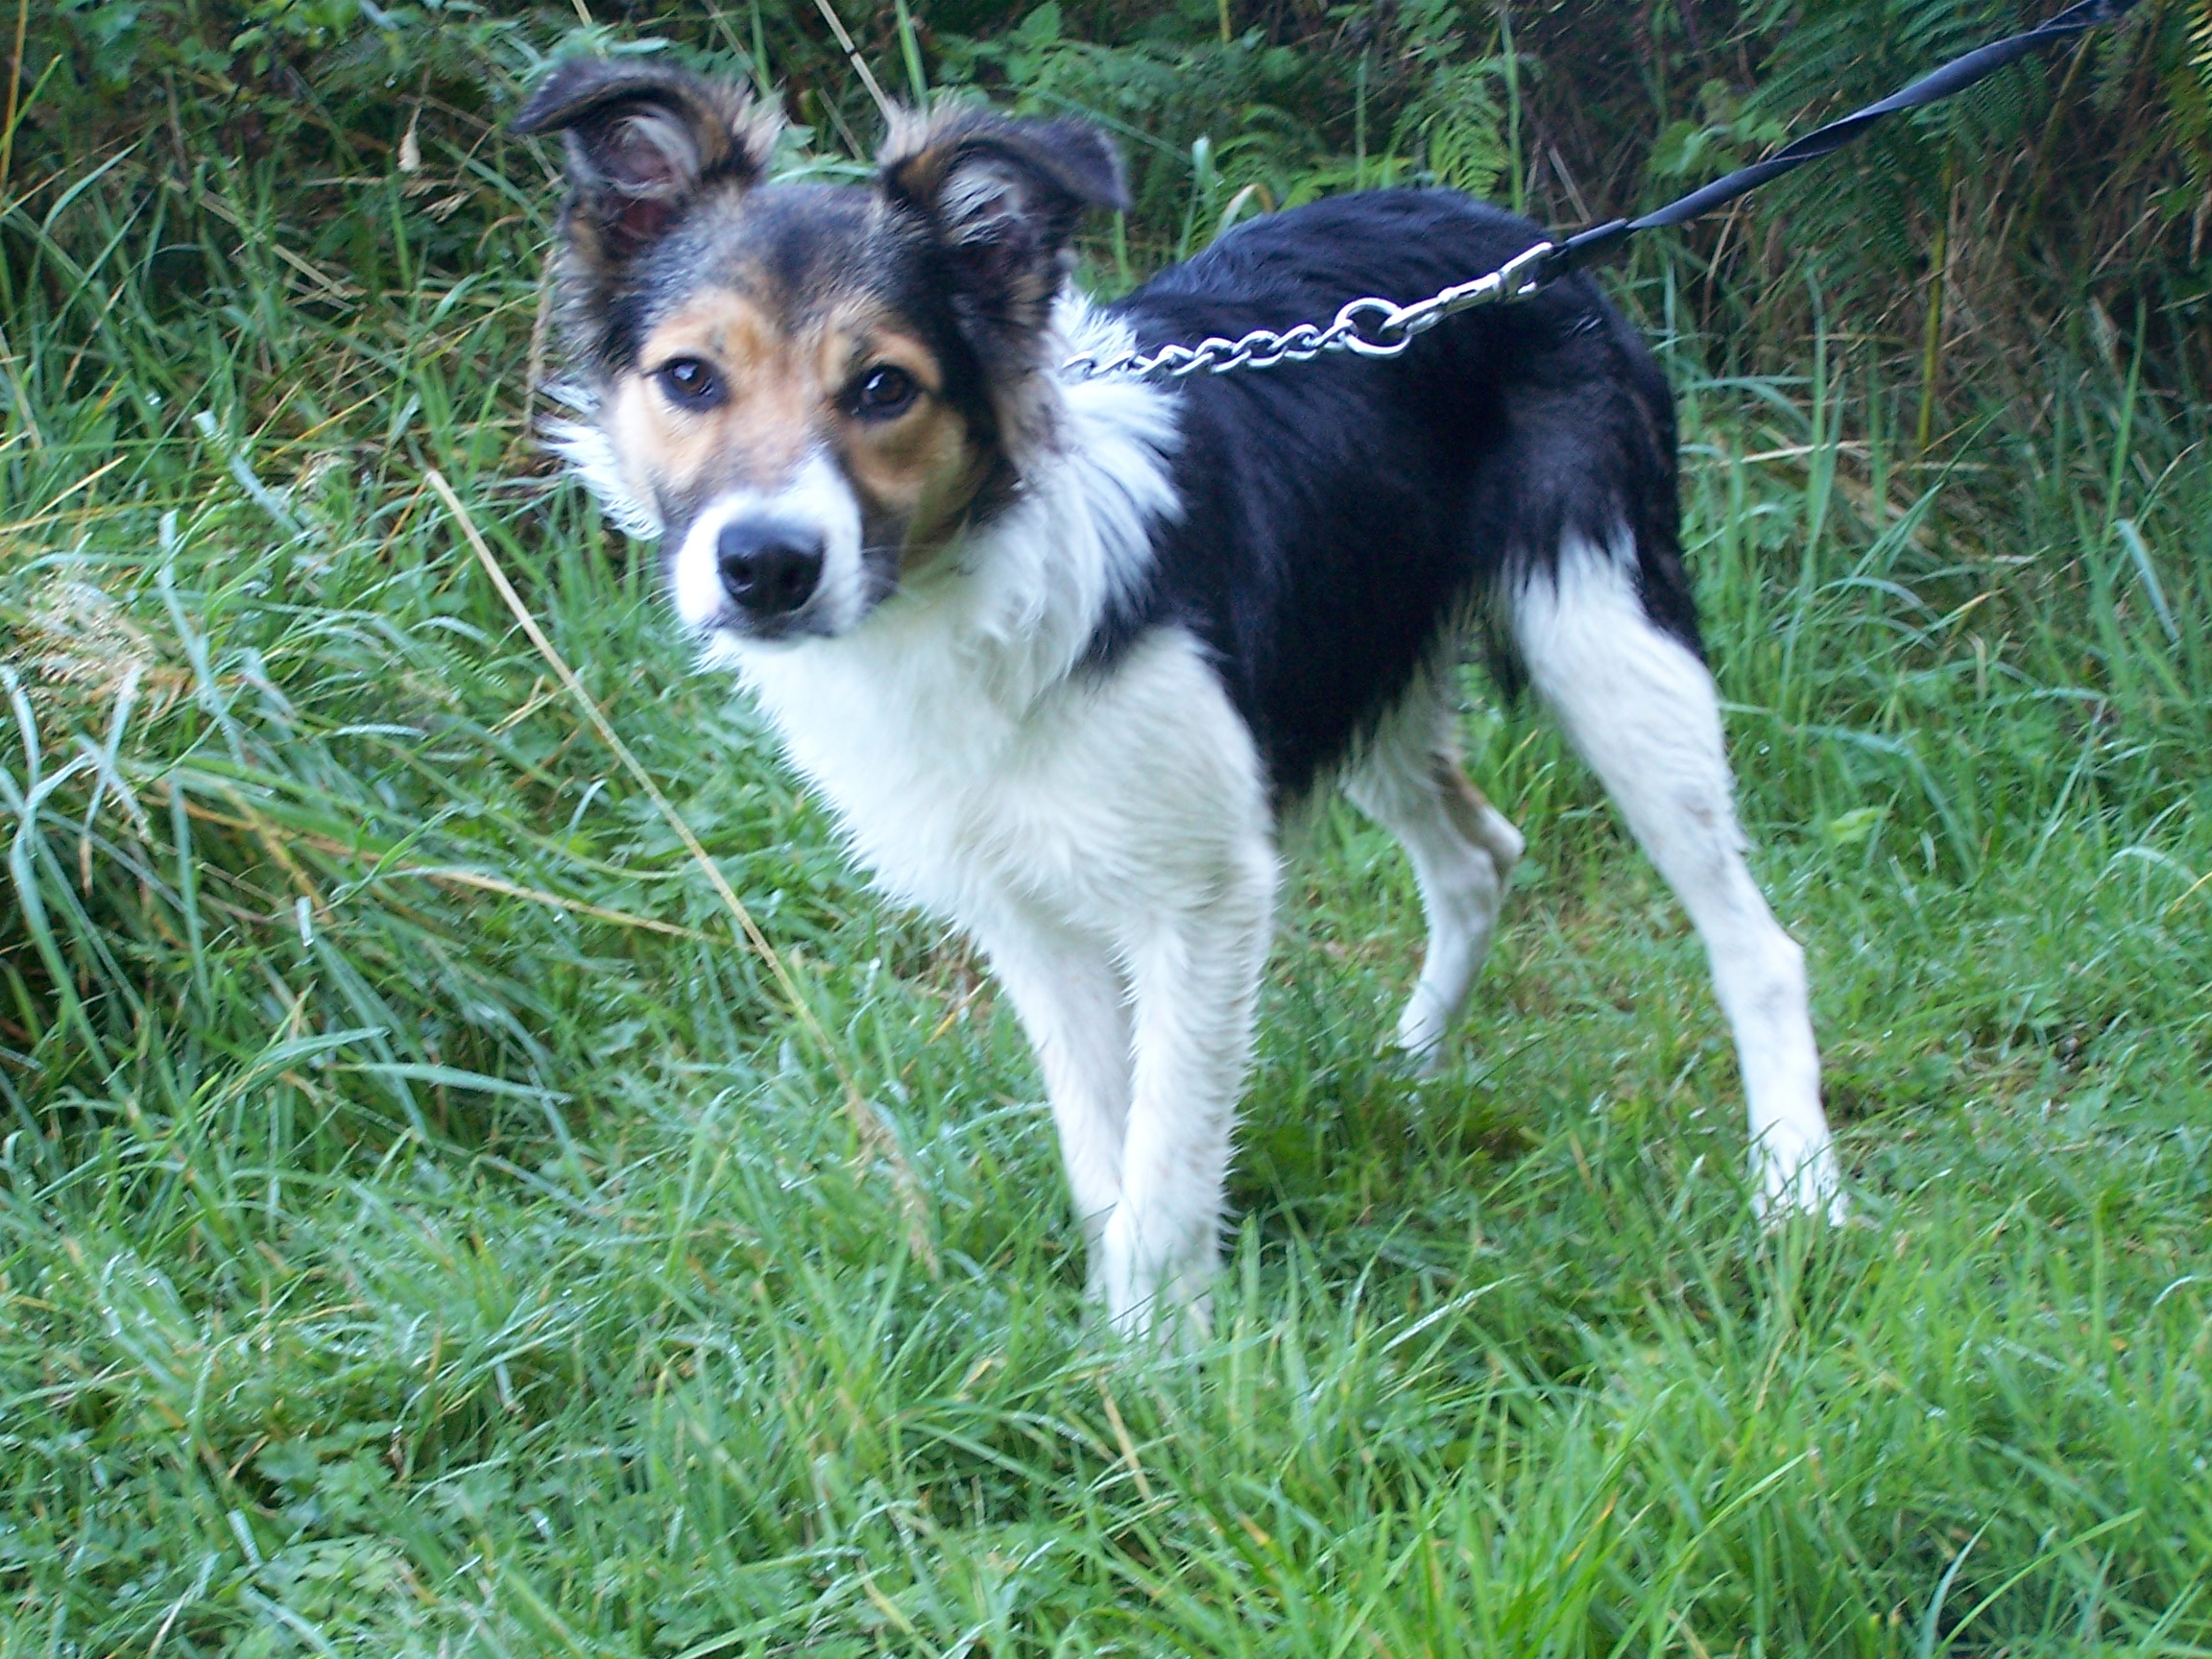 Re-homed: Rusty, 6 month old Male Collie